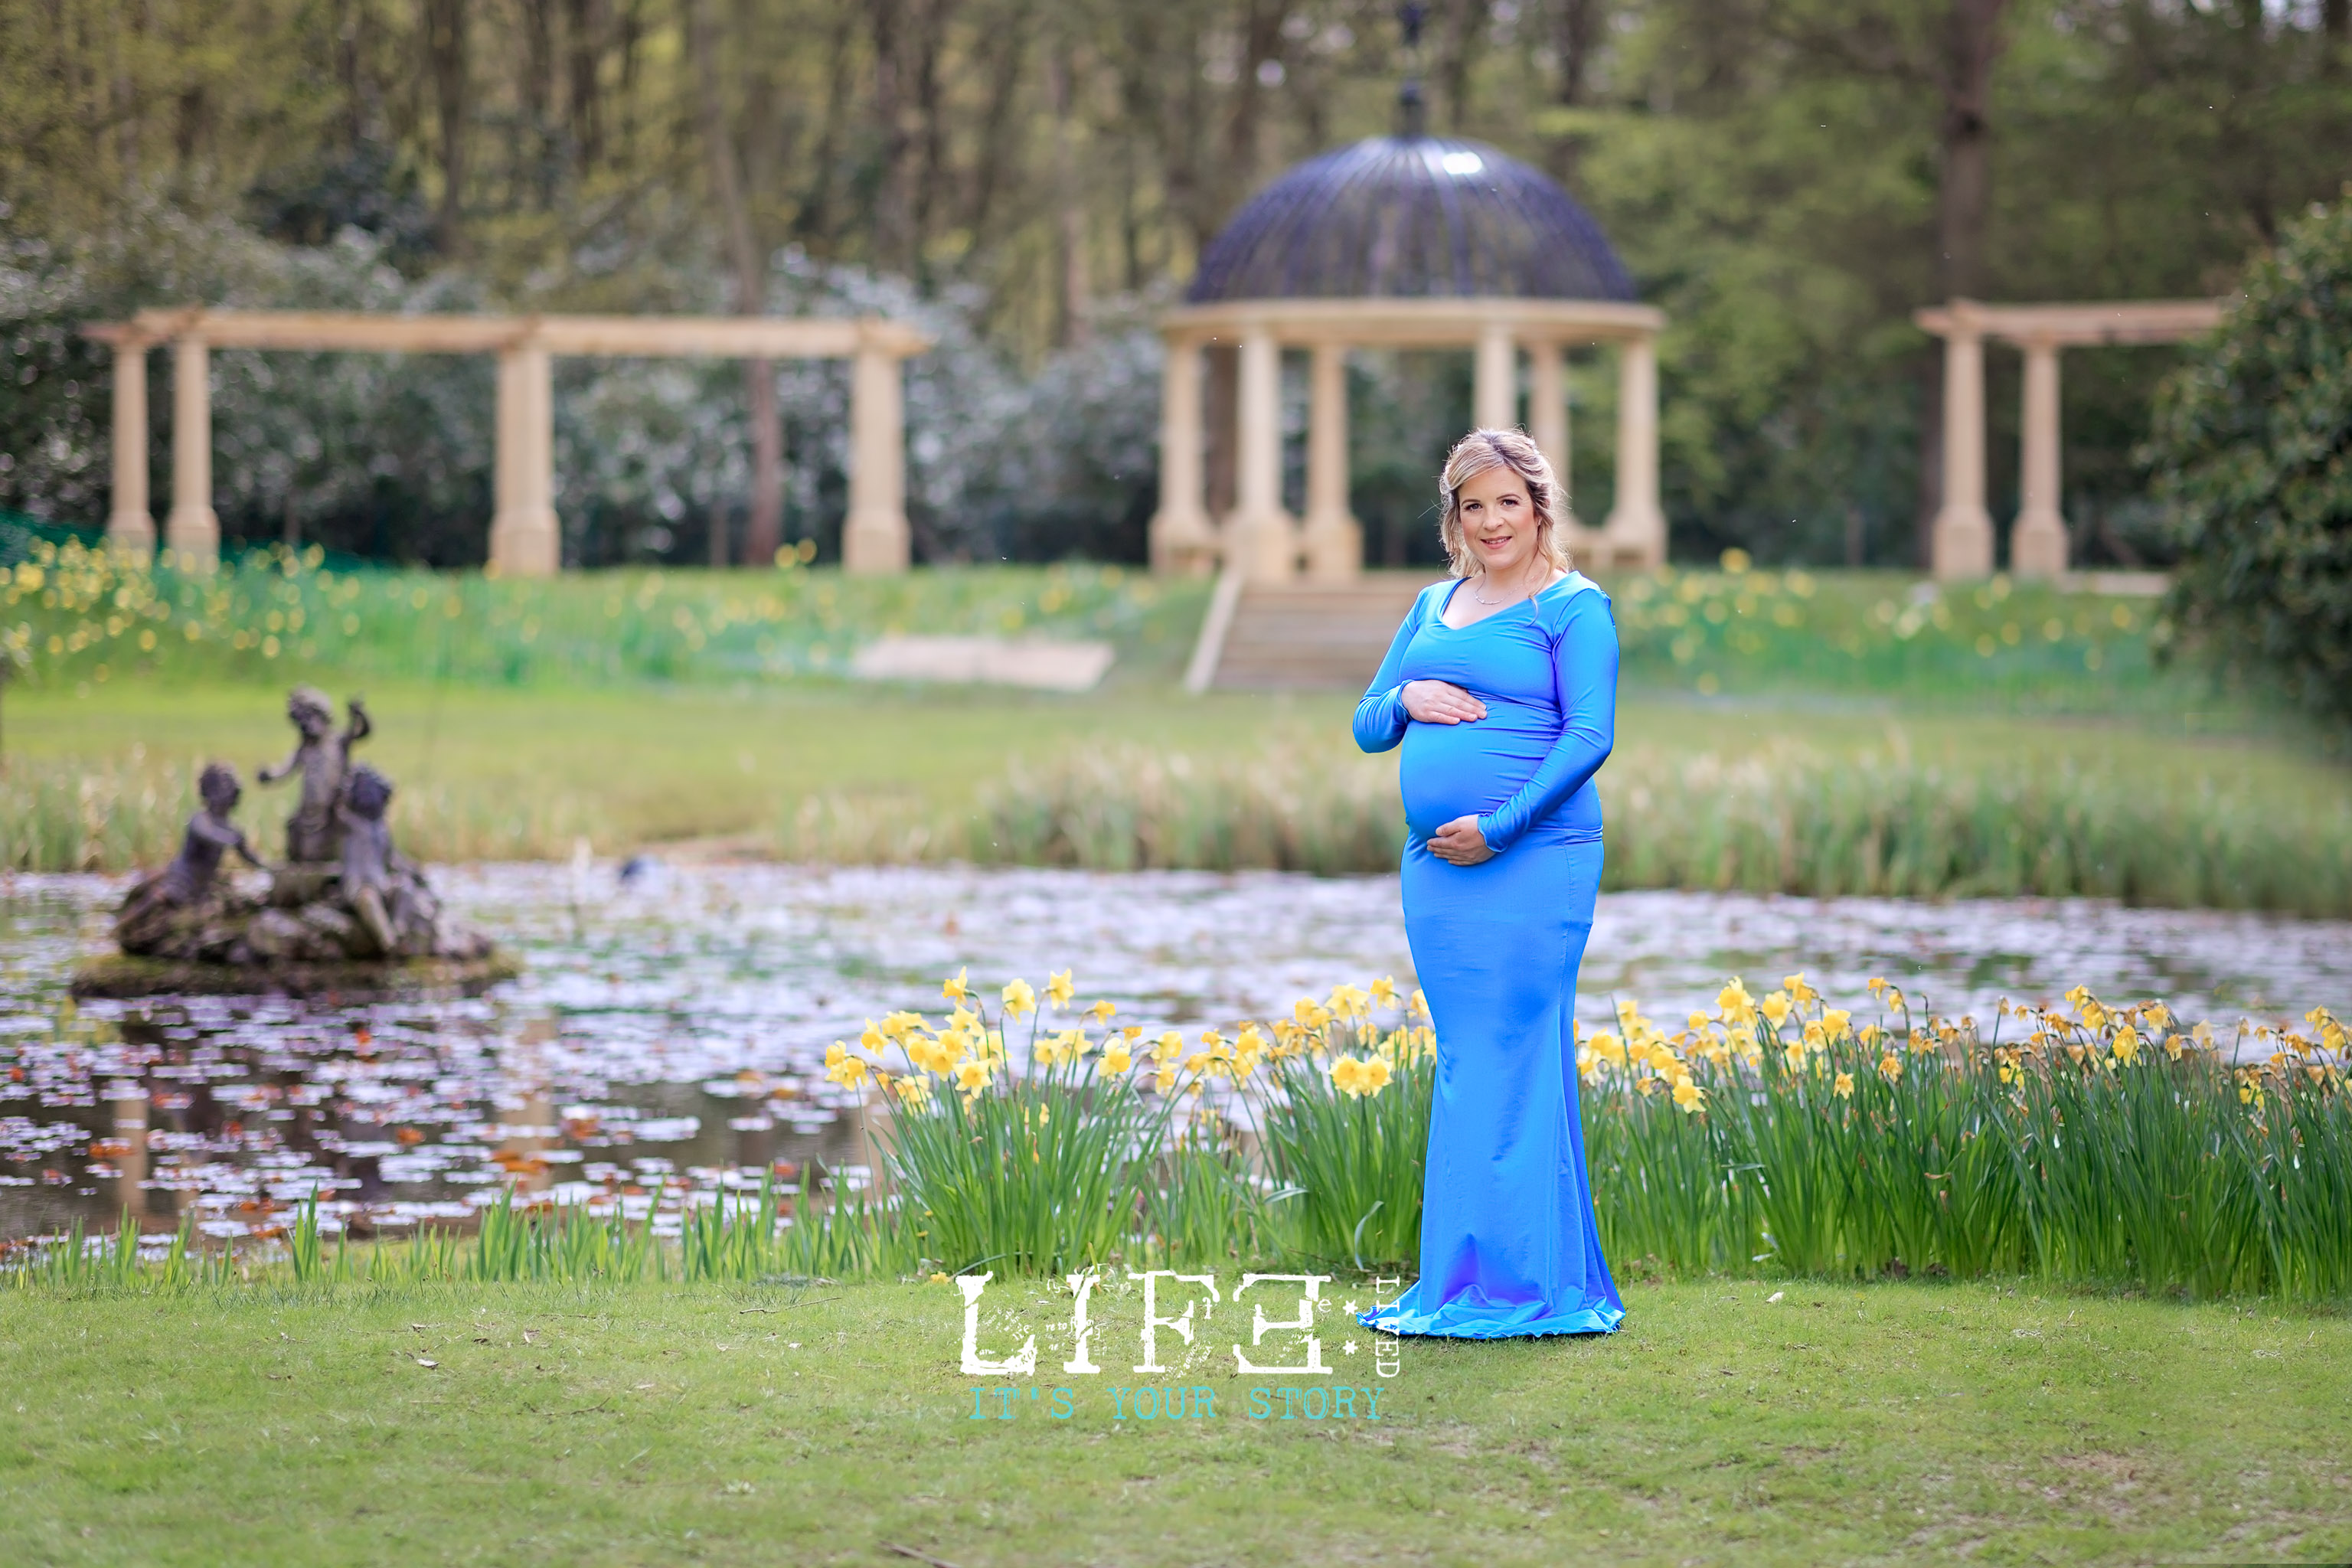 lincoln_maternity_photographer_sparkleprops-K2-2